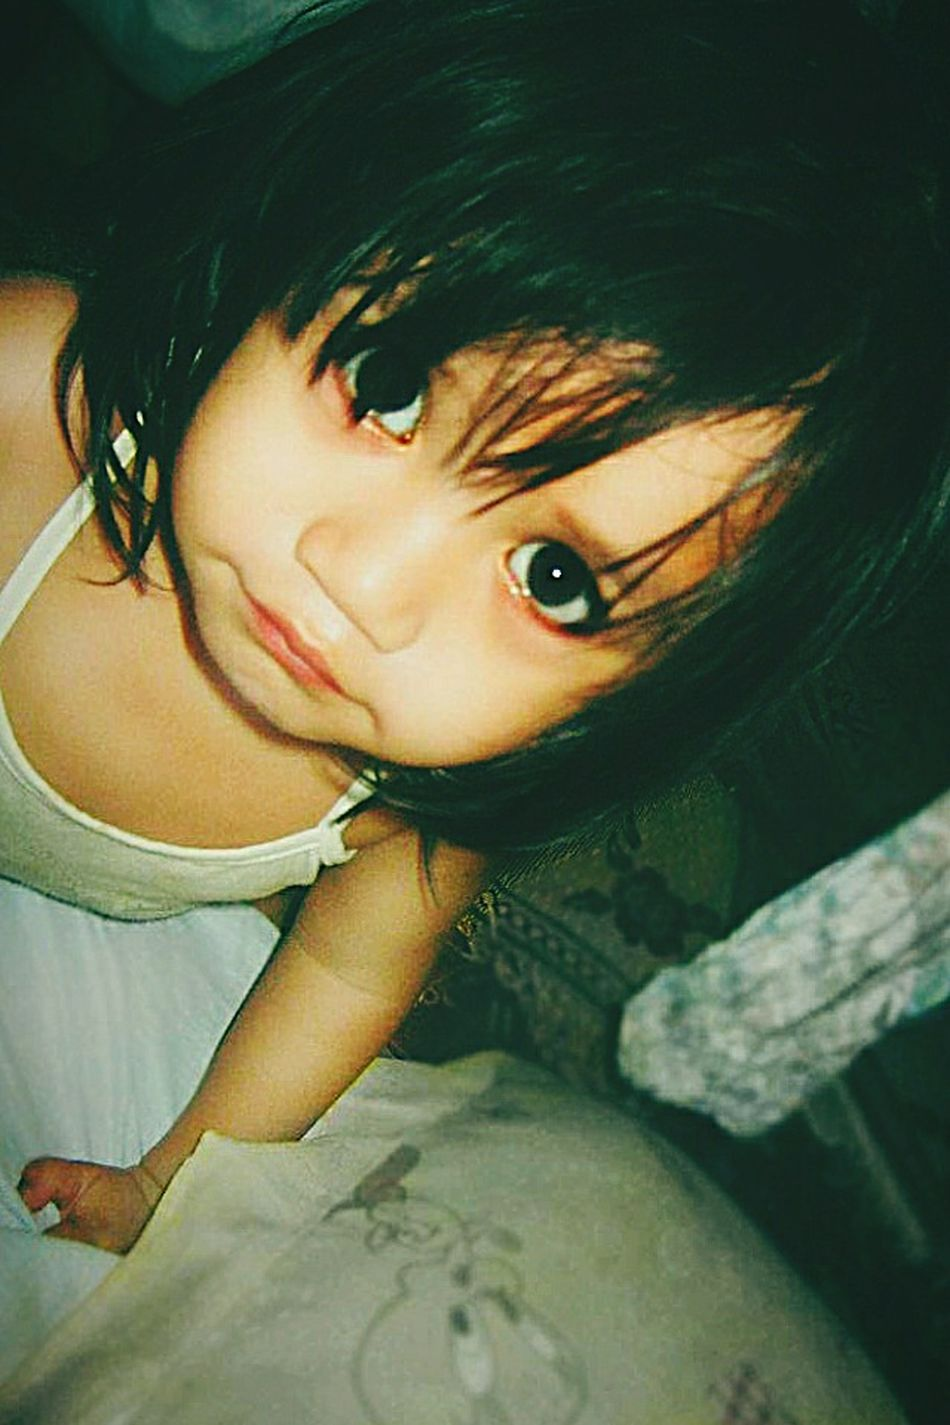 Big Eyes Innocence My Beautiful Niece ♥ I Miss Her :(  Saturatedcolors